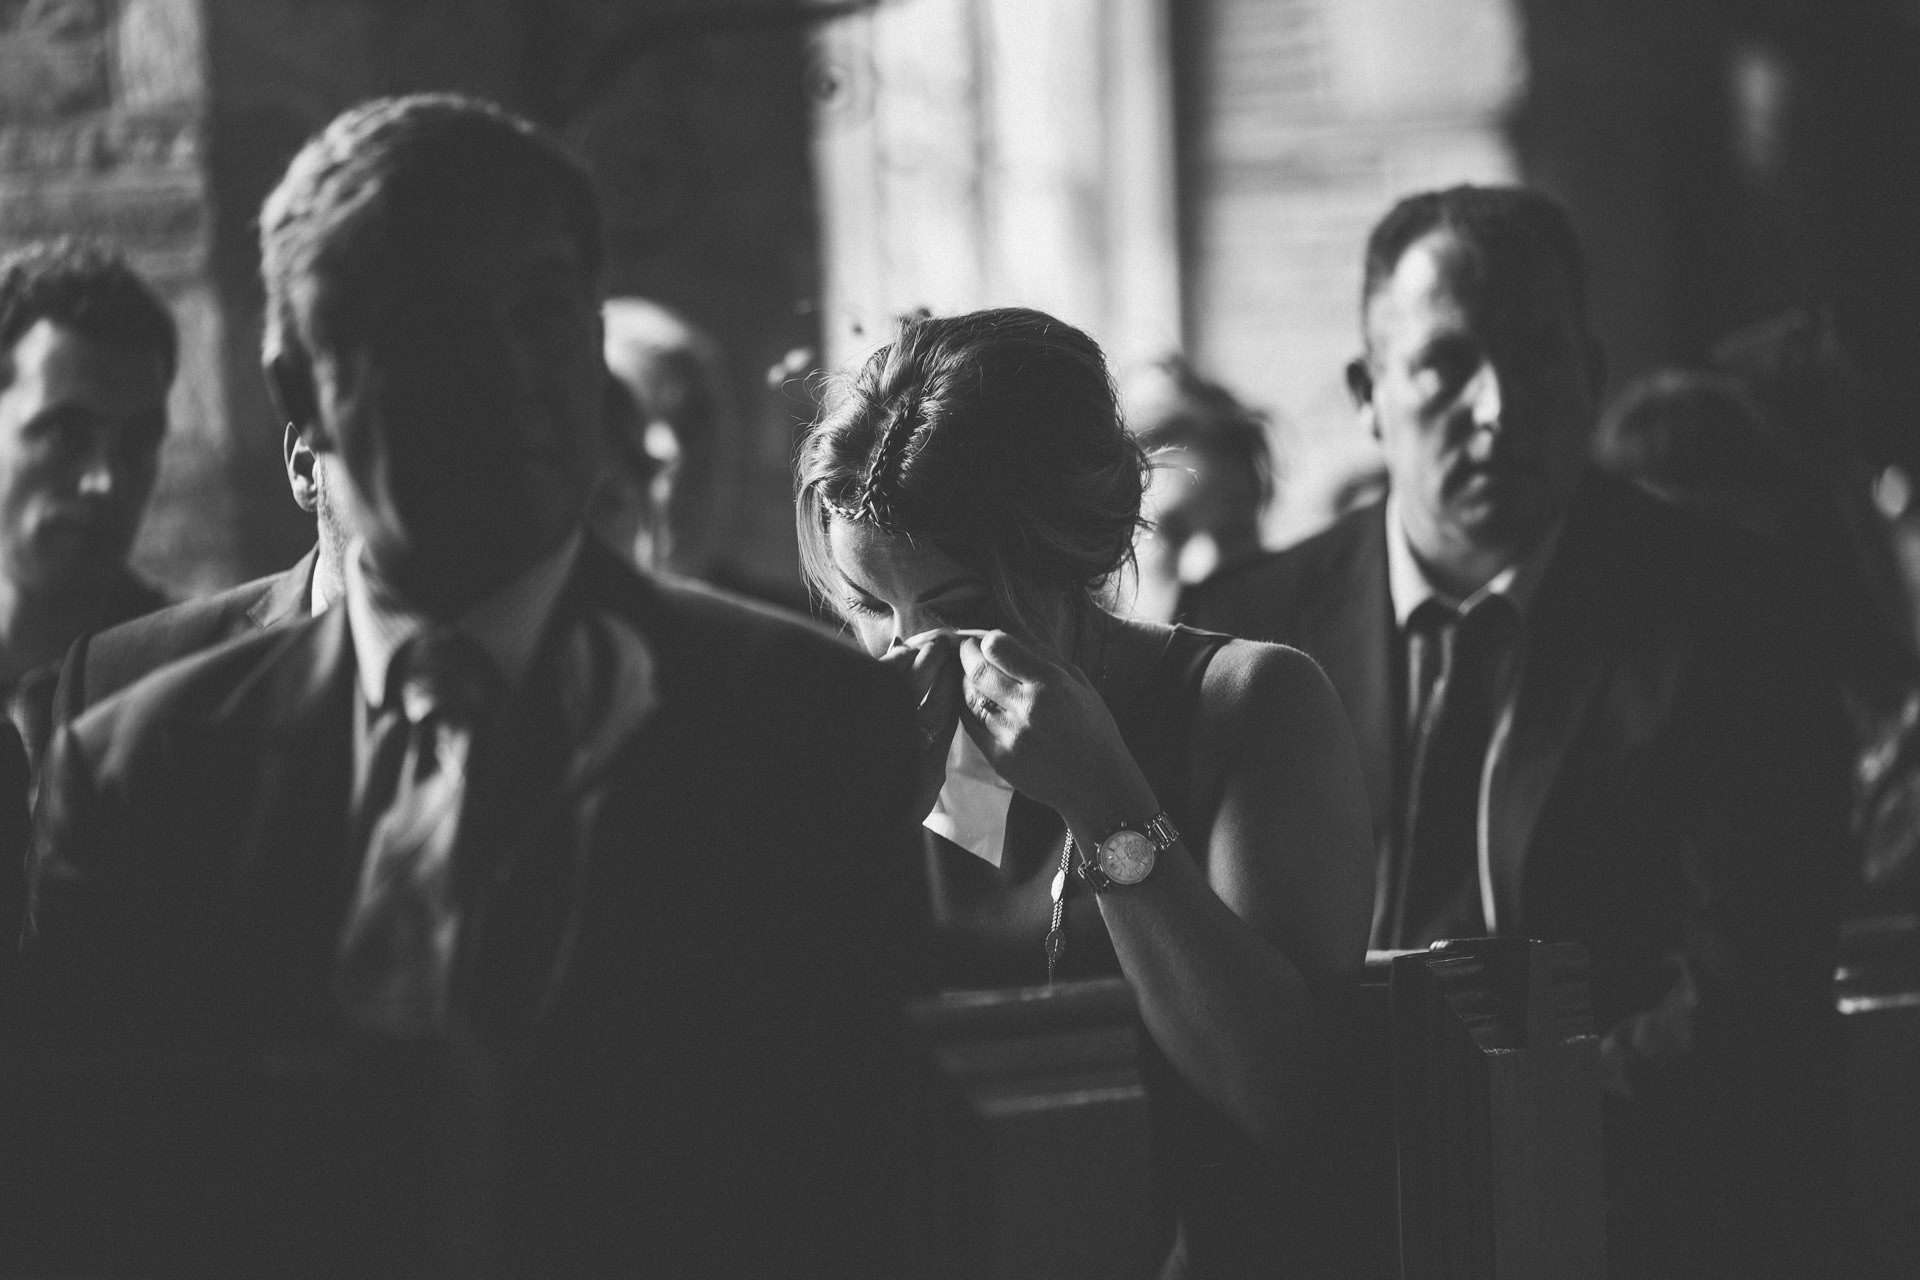 Best wedding photography 2016 - guests crying in ceremony